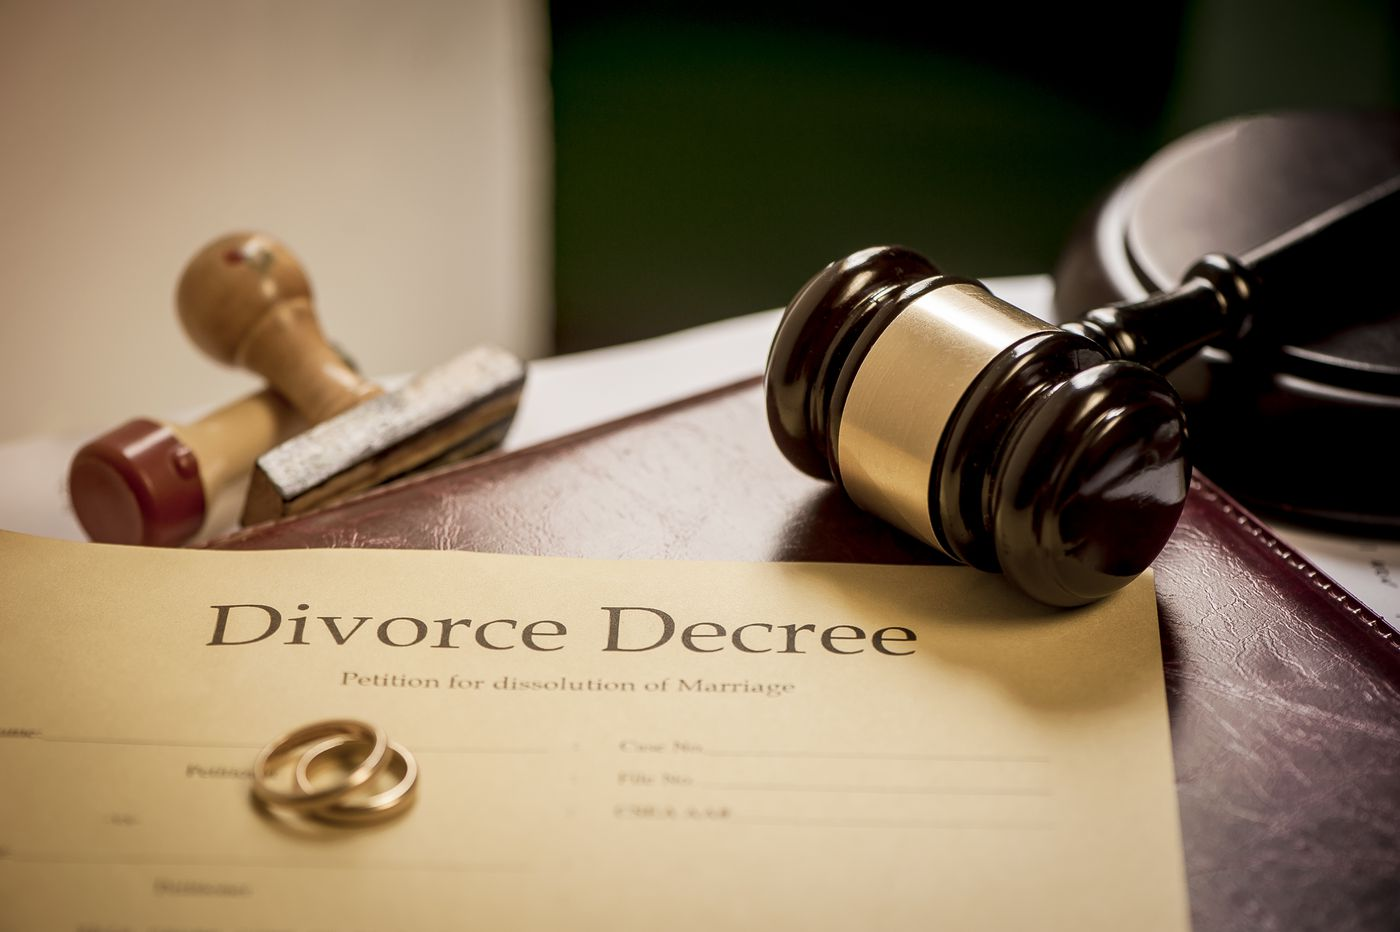 Divorce is hard enough – let's stop making it confusing and unaffordable   Opinion